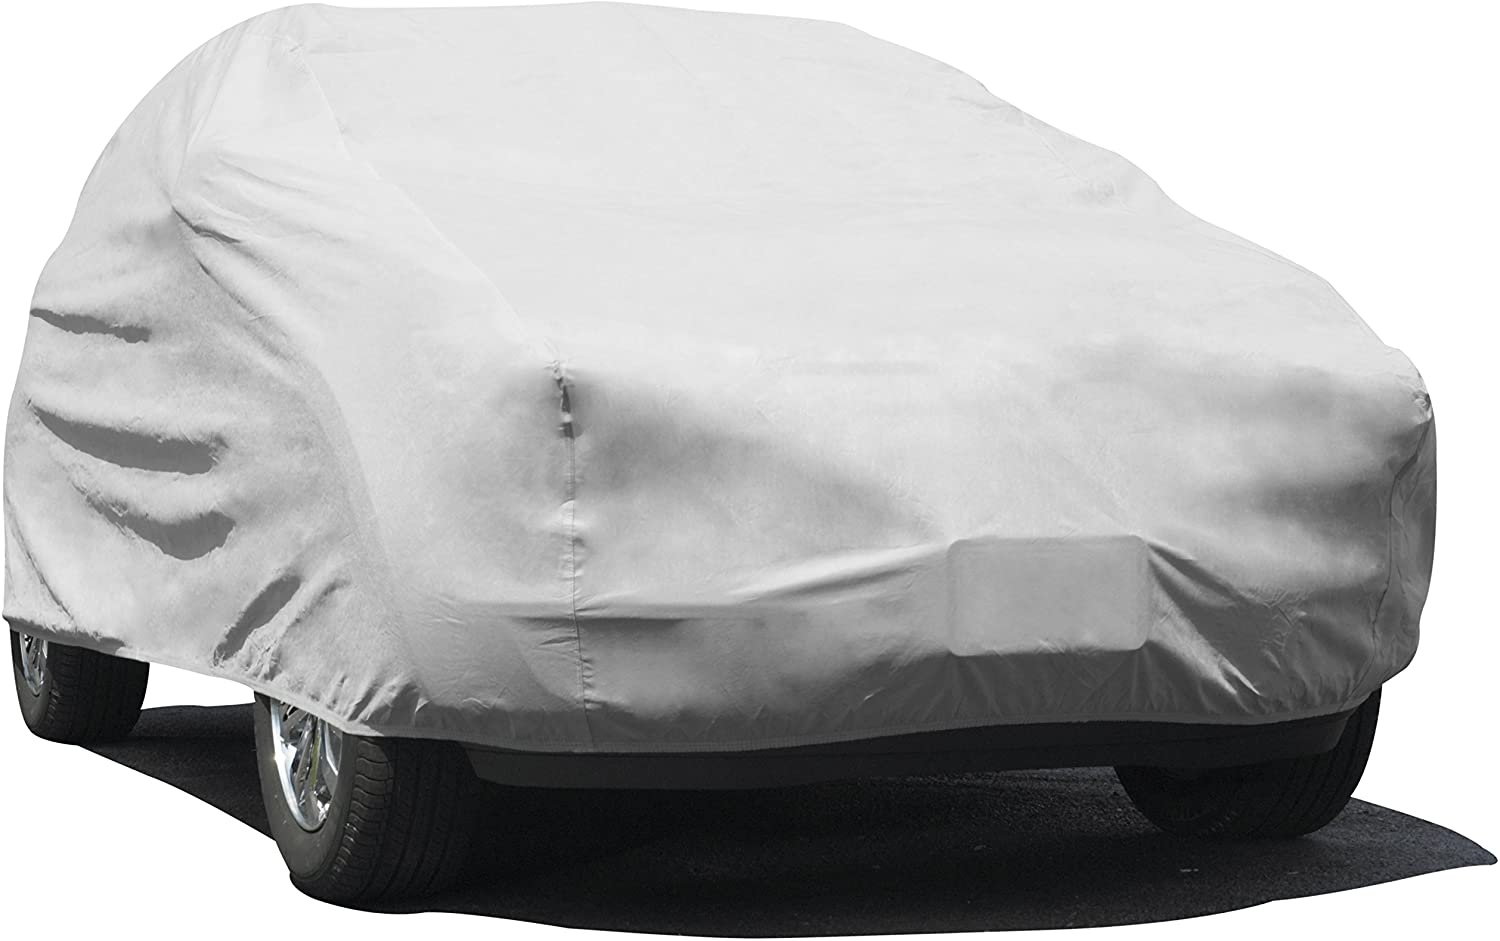 "Budge UB-1 Lite Indoor Dustproof UV Resistant Cover Fits Full Size SUVs up to 186"", Gray"